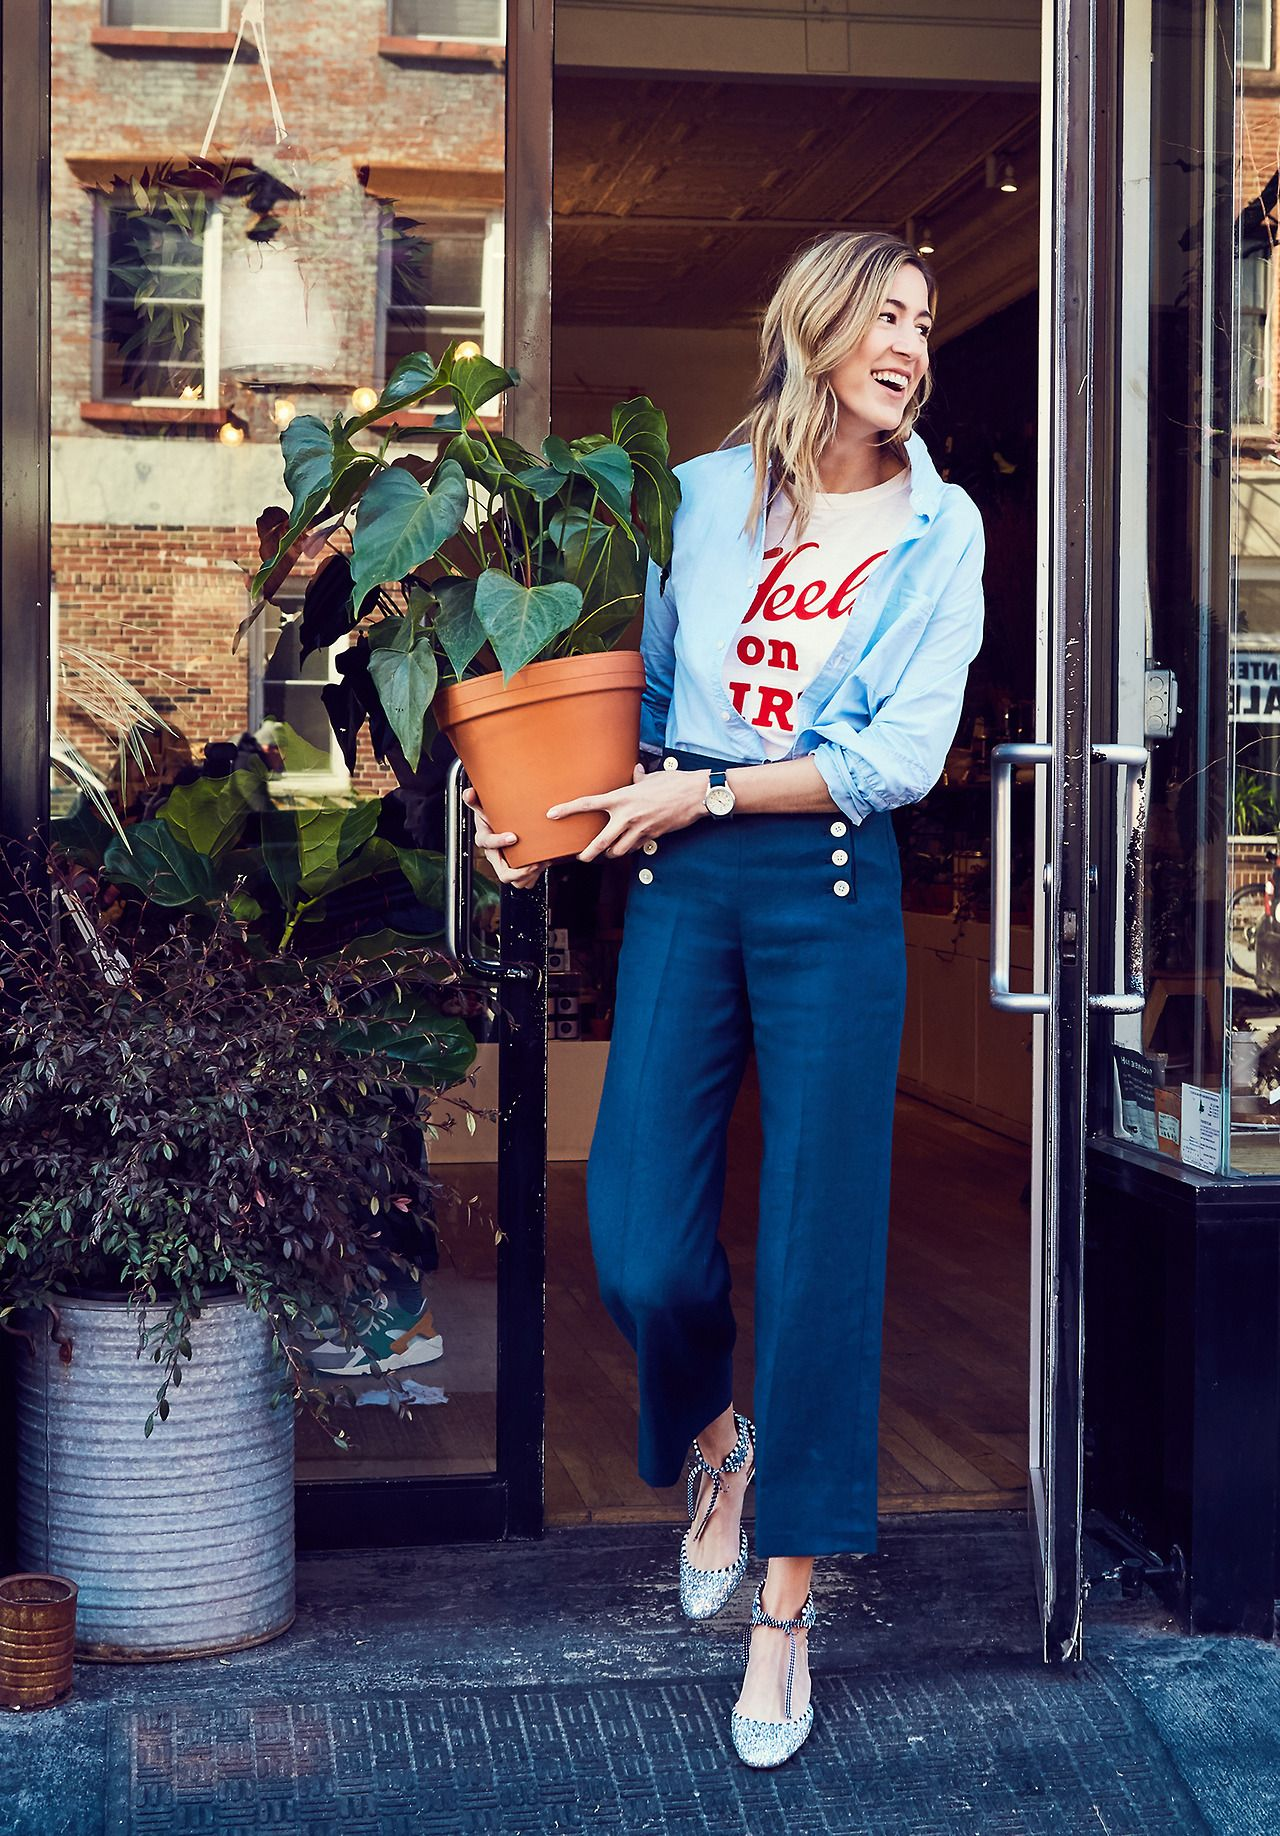 a247519a819 How It s Done  The Sailor Pant Even when you have legs for days—like our  in-house marketing maven Jenny—finding the right pair of pants can be  tricky.